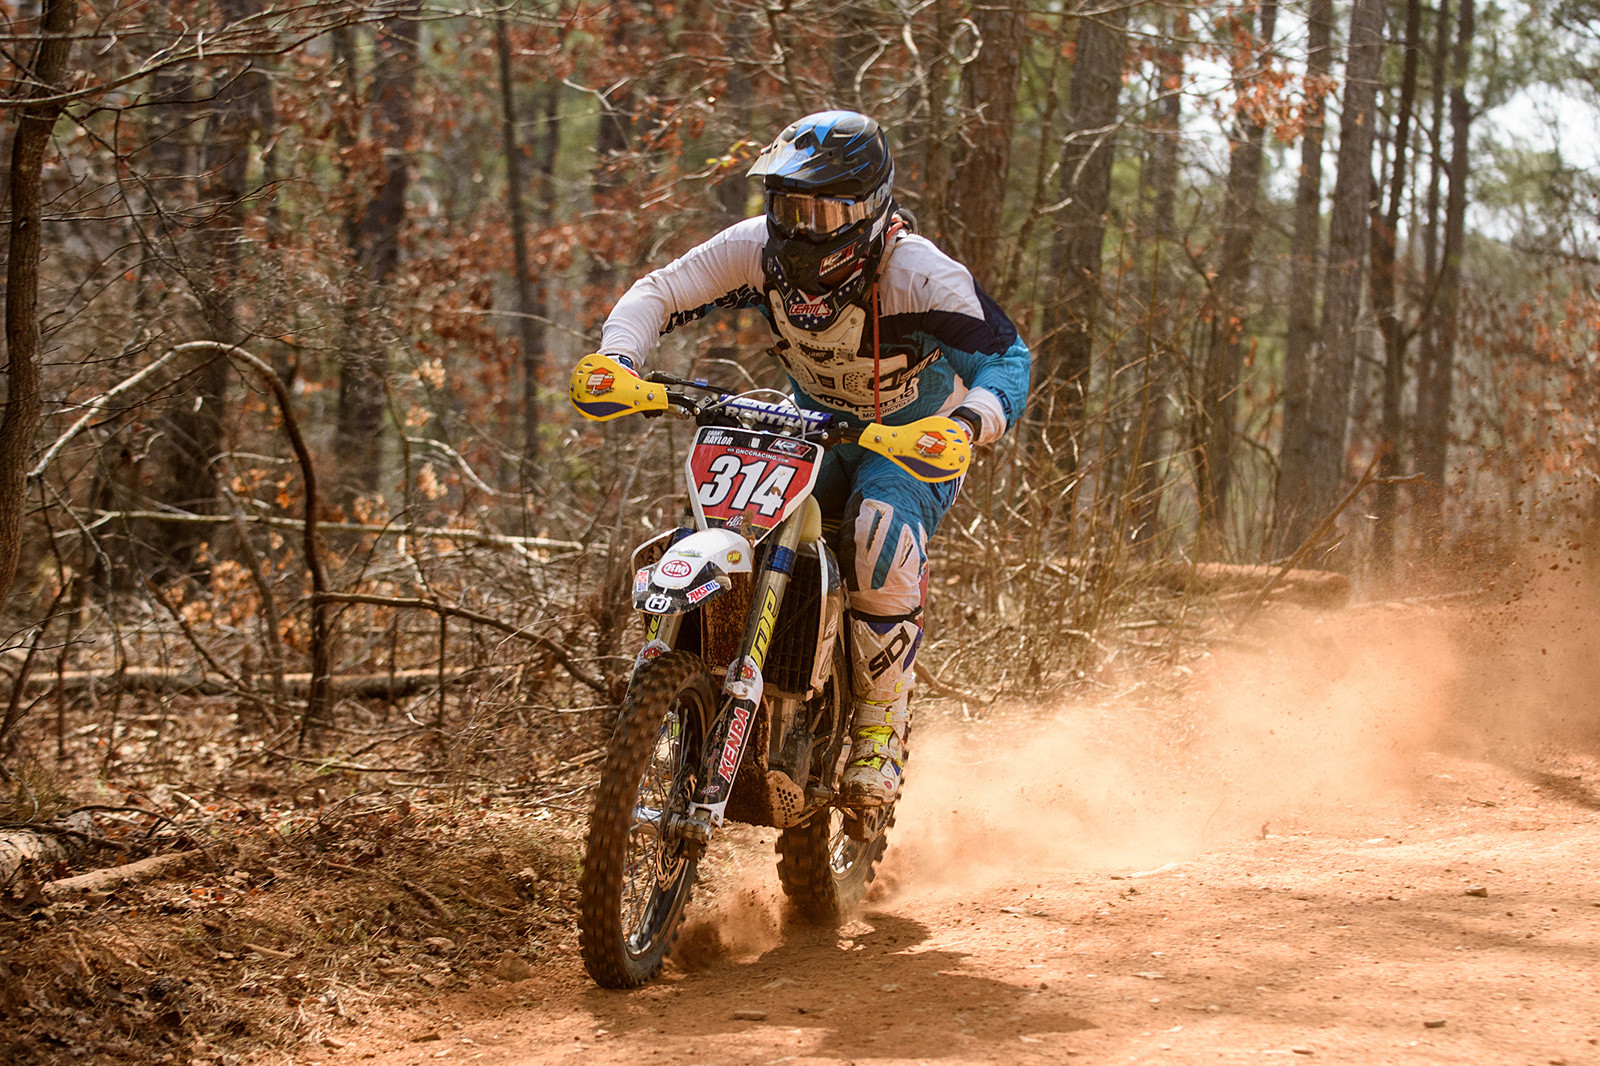 Grant Baylor - Big Buck GNCC - Motocross Pictures - Vital MX